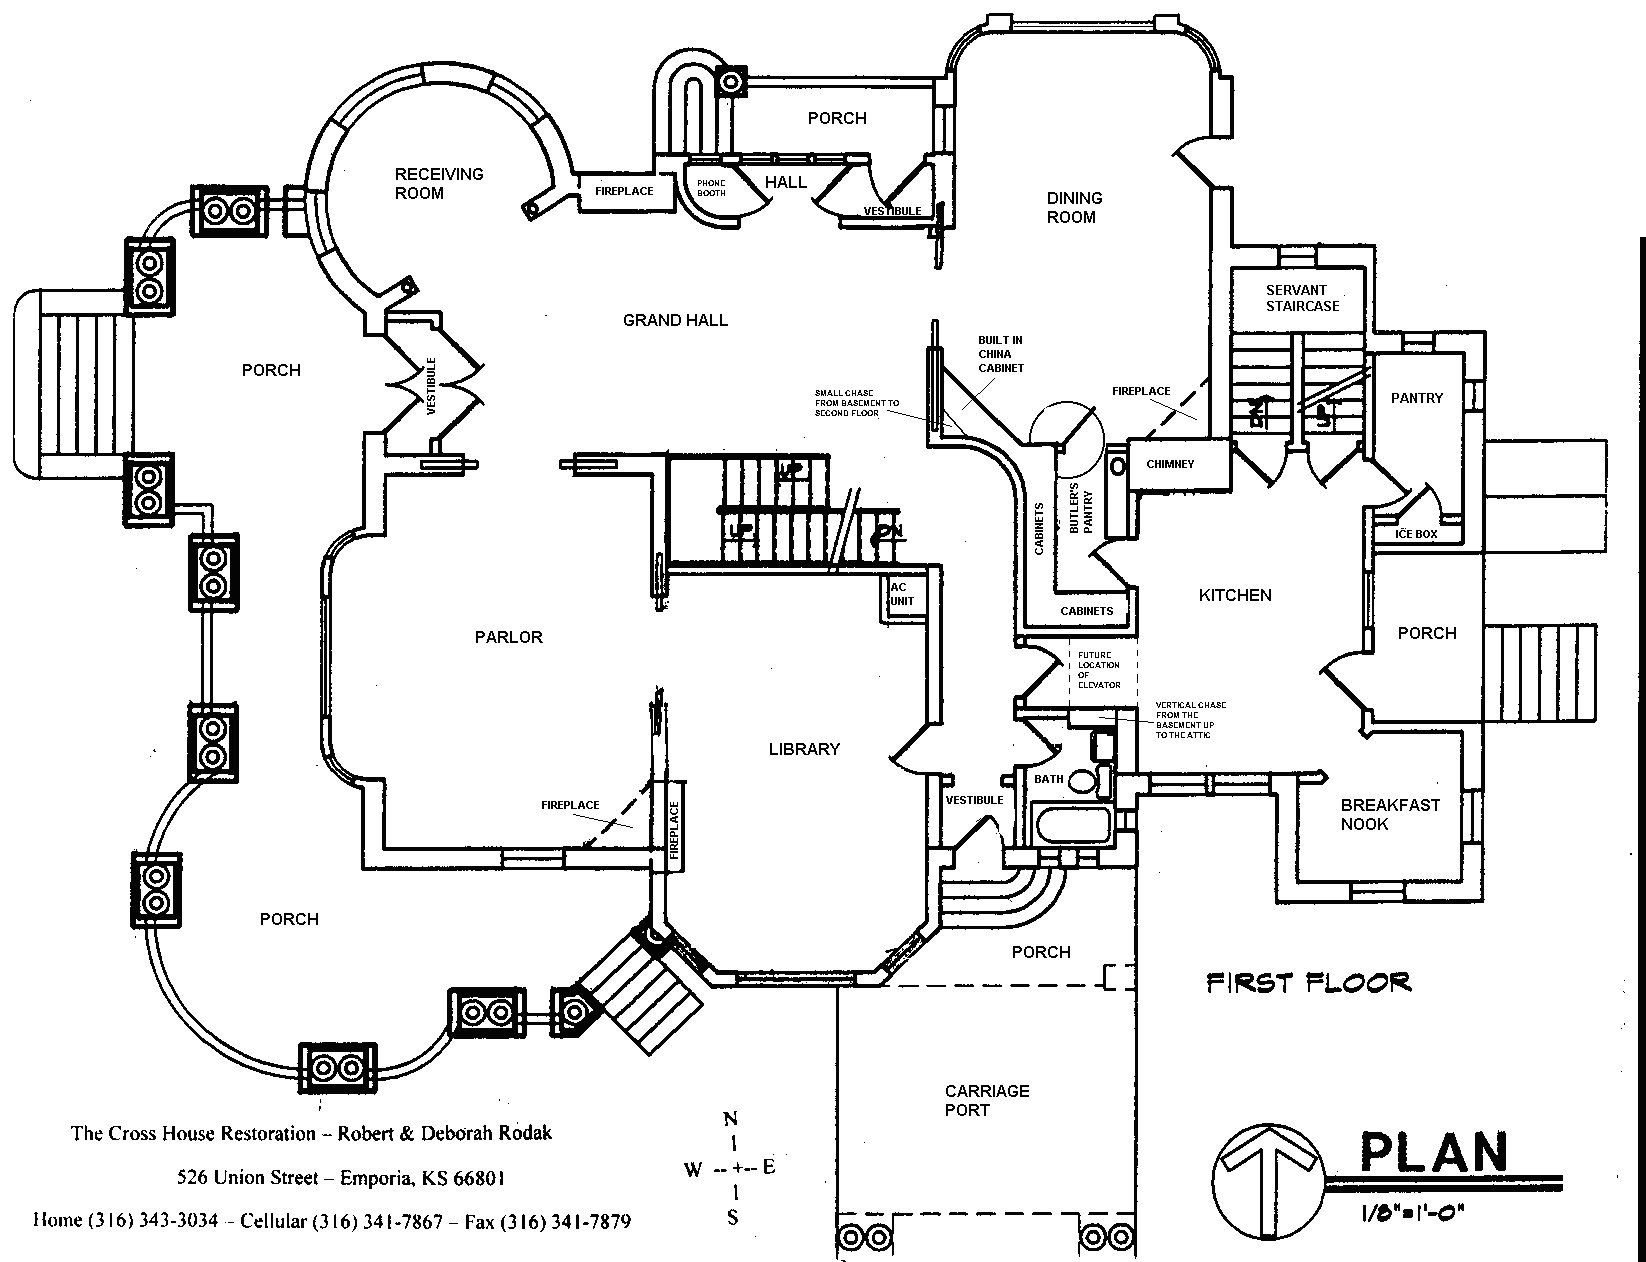 Minecraft house blueprints beach plans small floor home design minecraft house blueprints beach plans small floor best free home design idea inspiration malvernweather Images